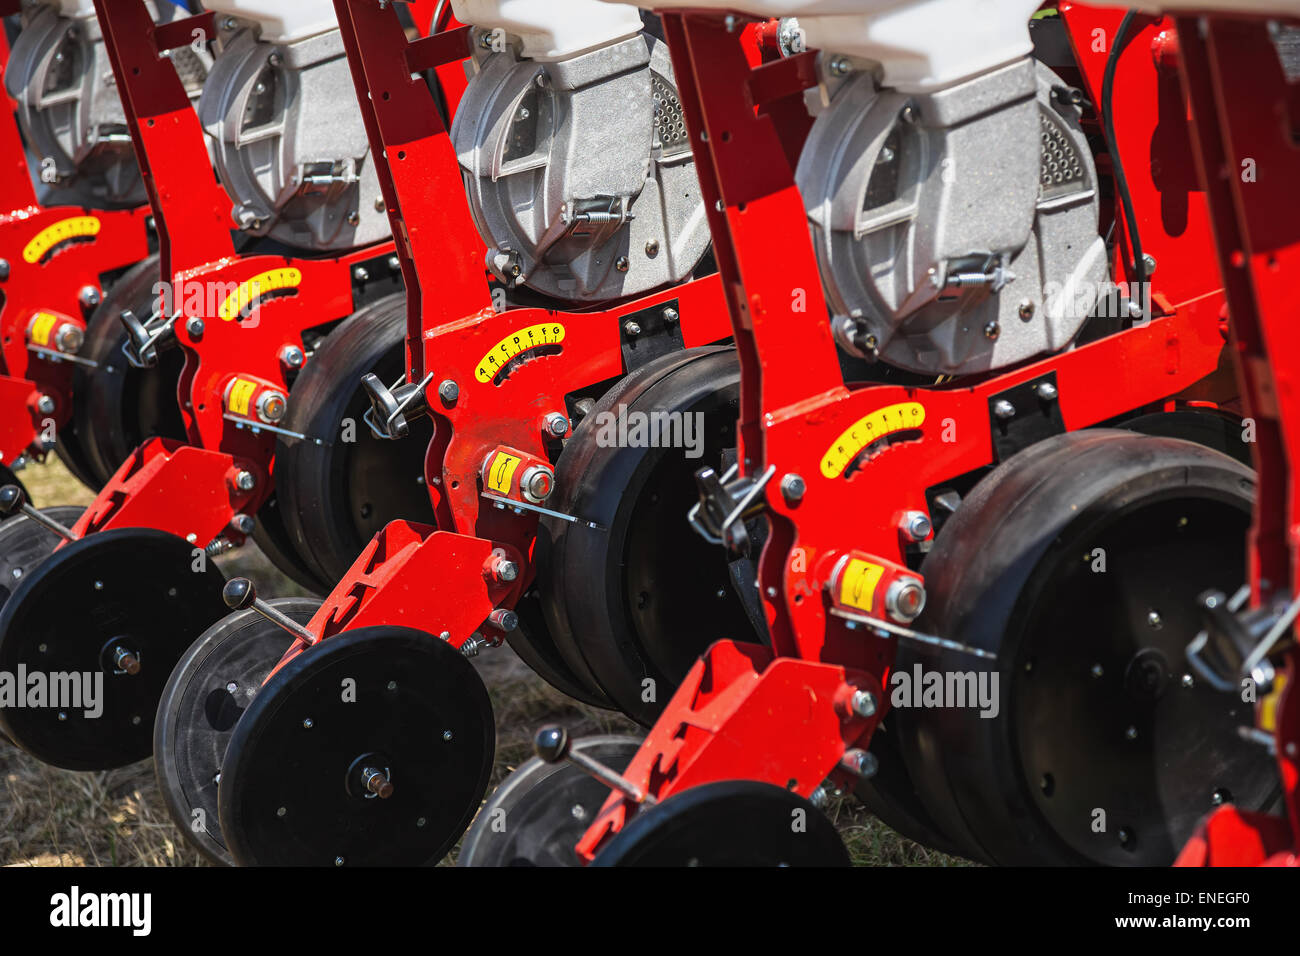 Mechanized machinery equipment for agriculture or farmaland industry - Stock Image